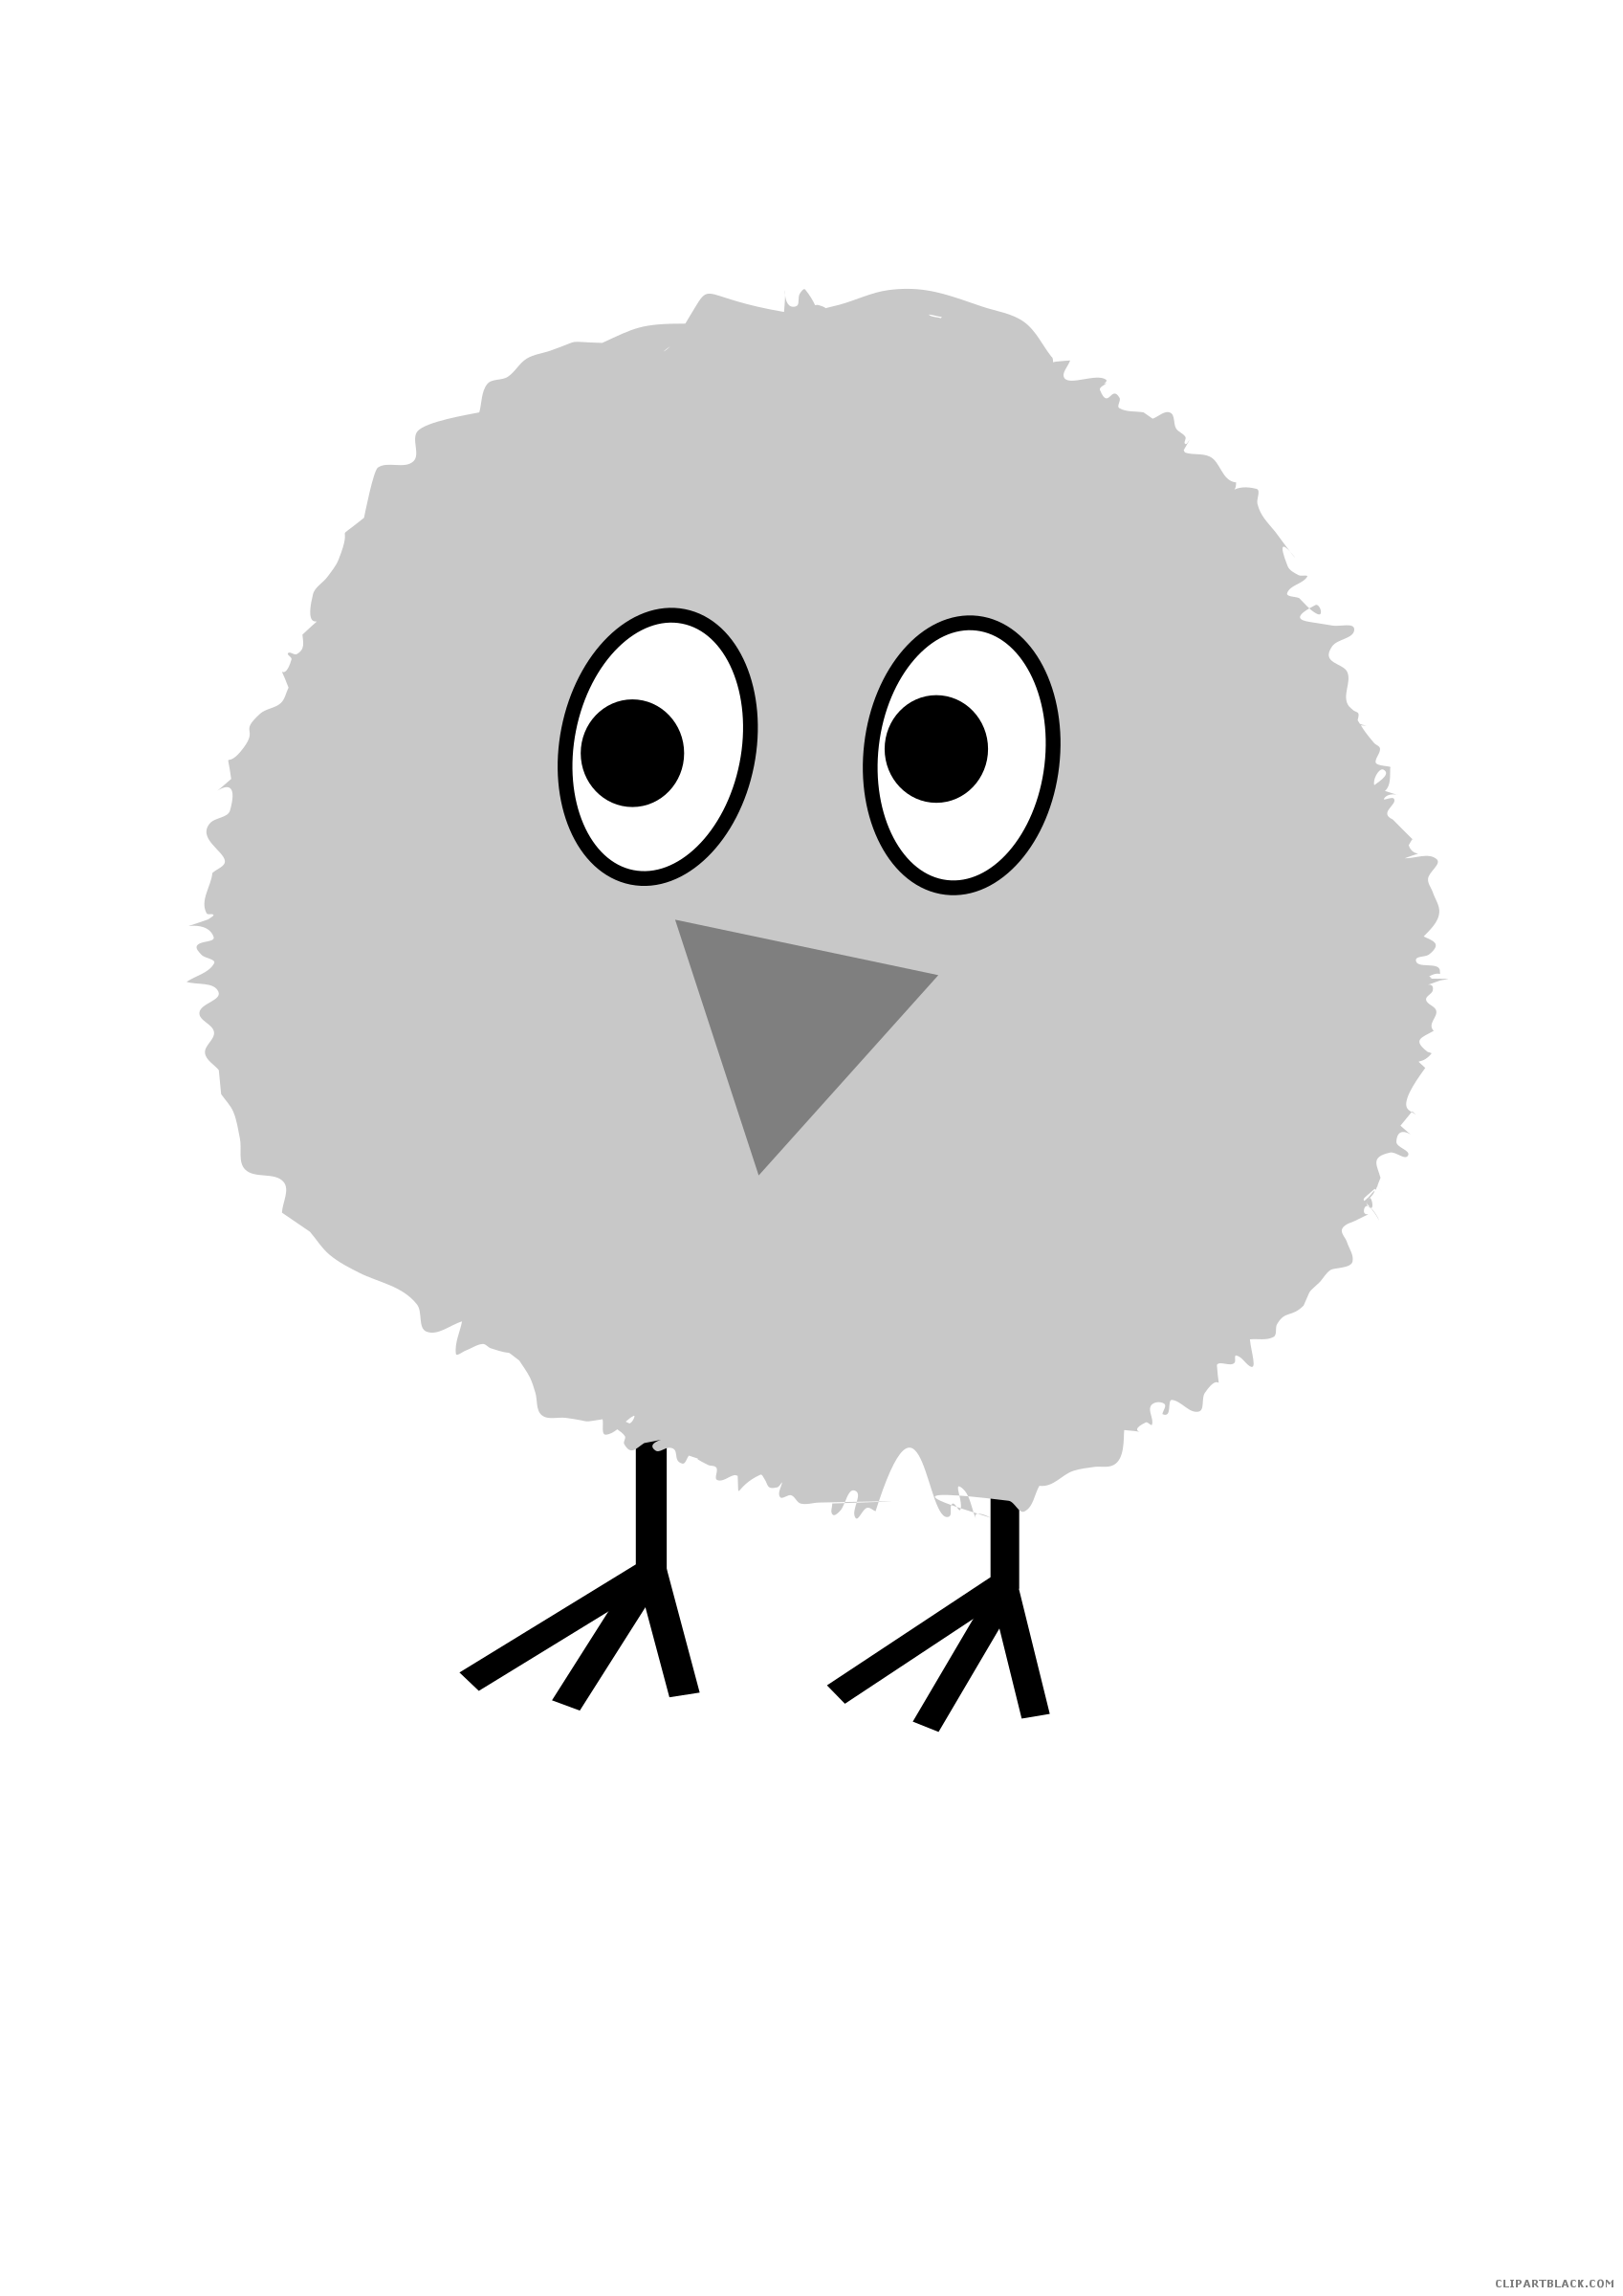 picture library Clipartblack com animal free. Chick clipart fluffy.